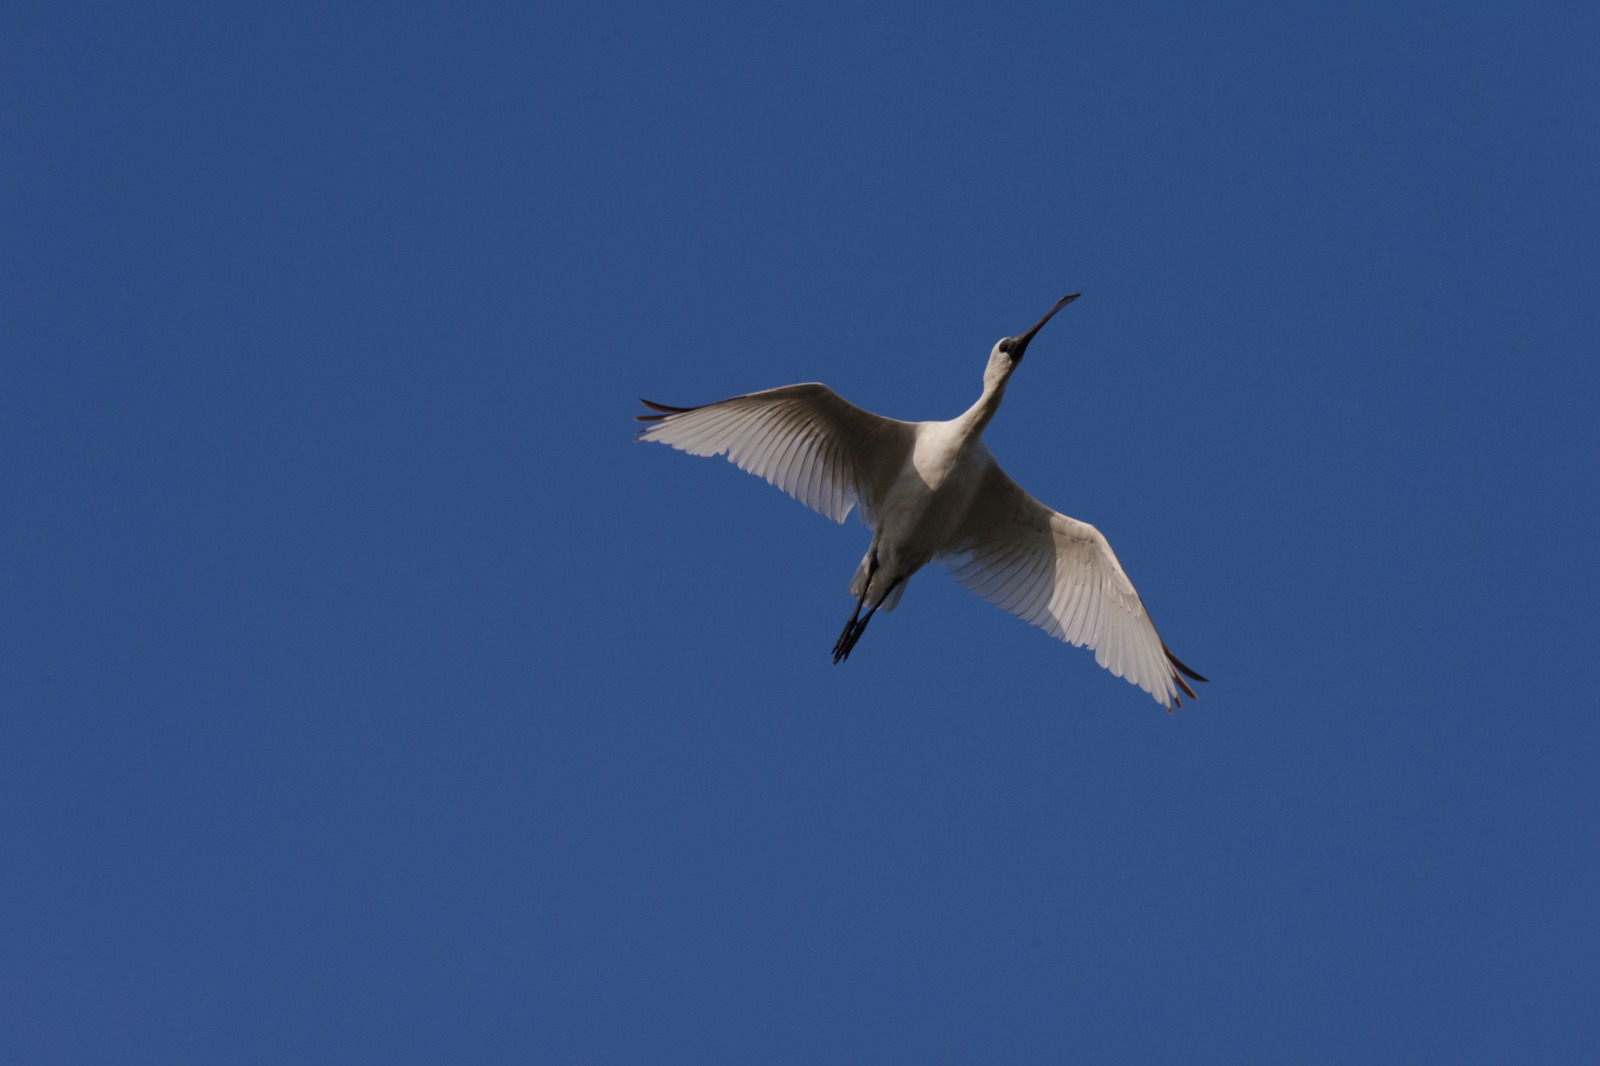 Black-faced Spoonbill population hits record high  Number in HK continues to decline   Protection of Deep Bay in urgent need